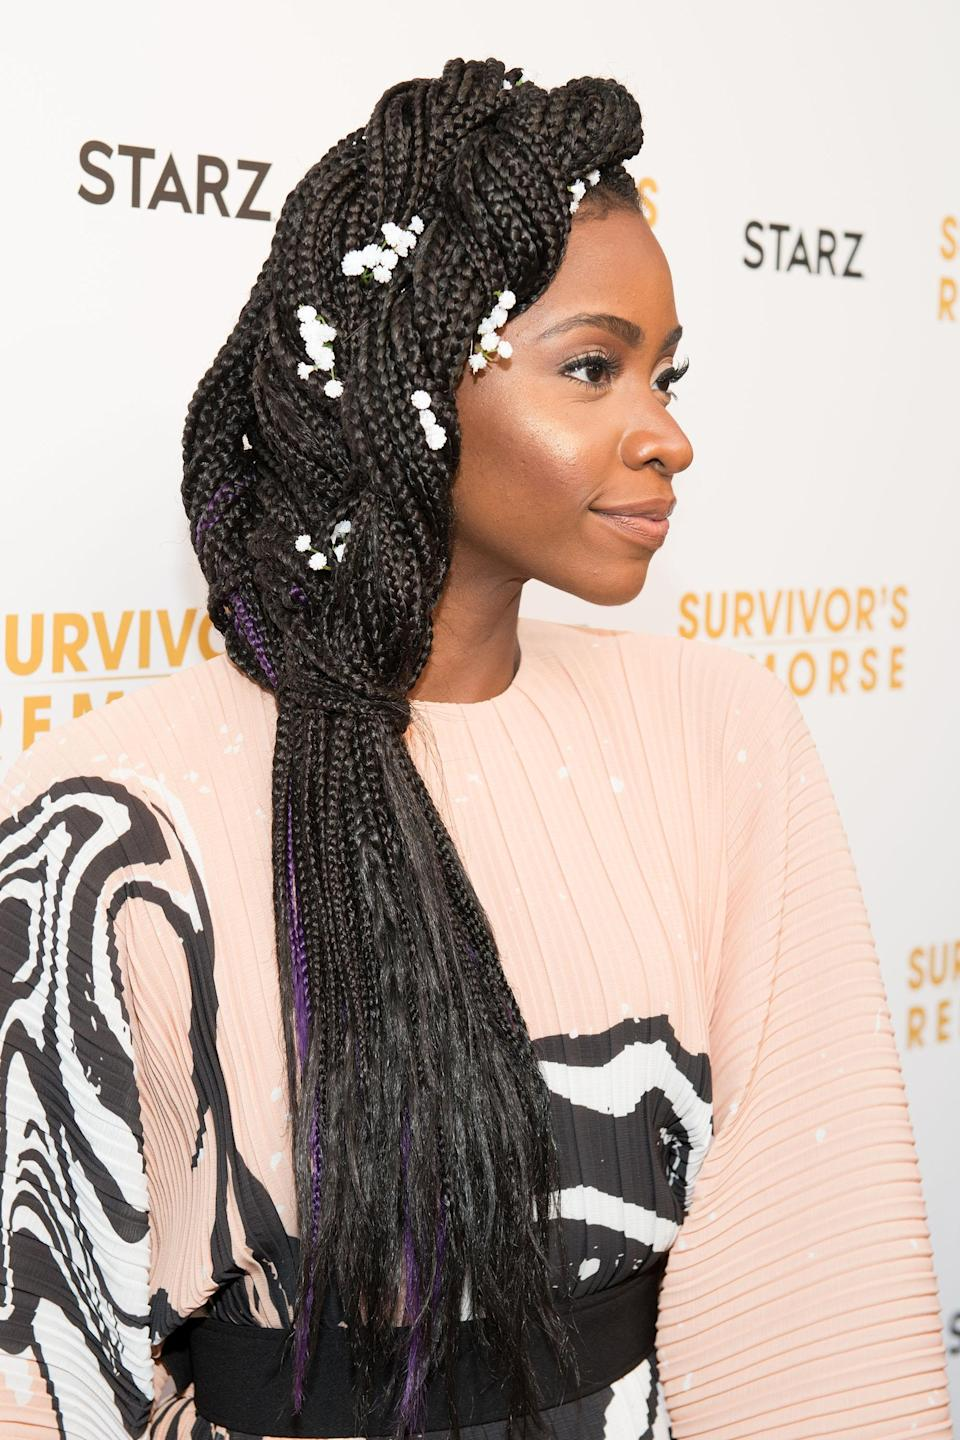 "<h3>Teyonah Parris</h3> <br>Actress Teyonah Parris twisted her <a href=""https://www.refinery29.com/en-us/box-braid-hairstyles"" rel=""nofollow noopener"" target=""_blank"" data-ylk=""slk:box braids"" class=""link rapid-noclick-resp"">box braids</a> into a gorgeous side braid, only made more elegant by those delicate <a href=""https://www.refinery29.com/en-us/2017/07/165670/bead-braids-trend"" rel=""nofollow noopener"" target=""_blank"" data-ylk=""slk:white floral accents"" class=""link rapid-noclick-resp"">white floral accents</a>.<span class=""copyright"">Photo: Noam Galai/Getty Images. </span><br>"